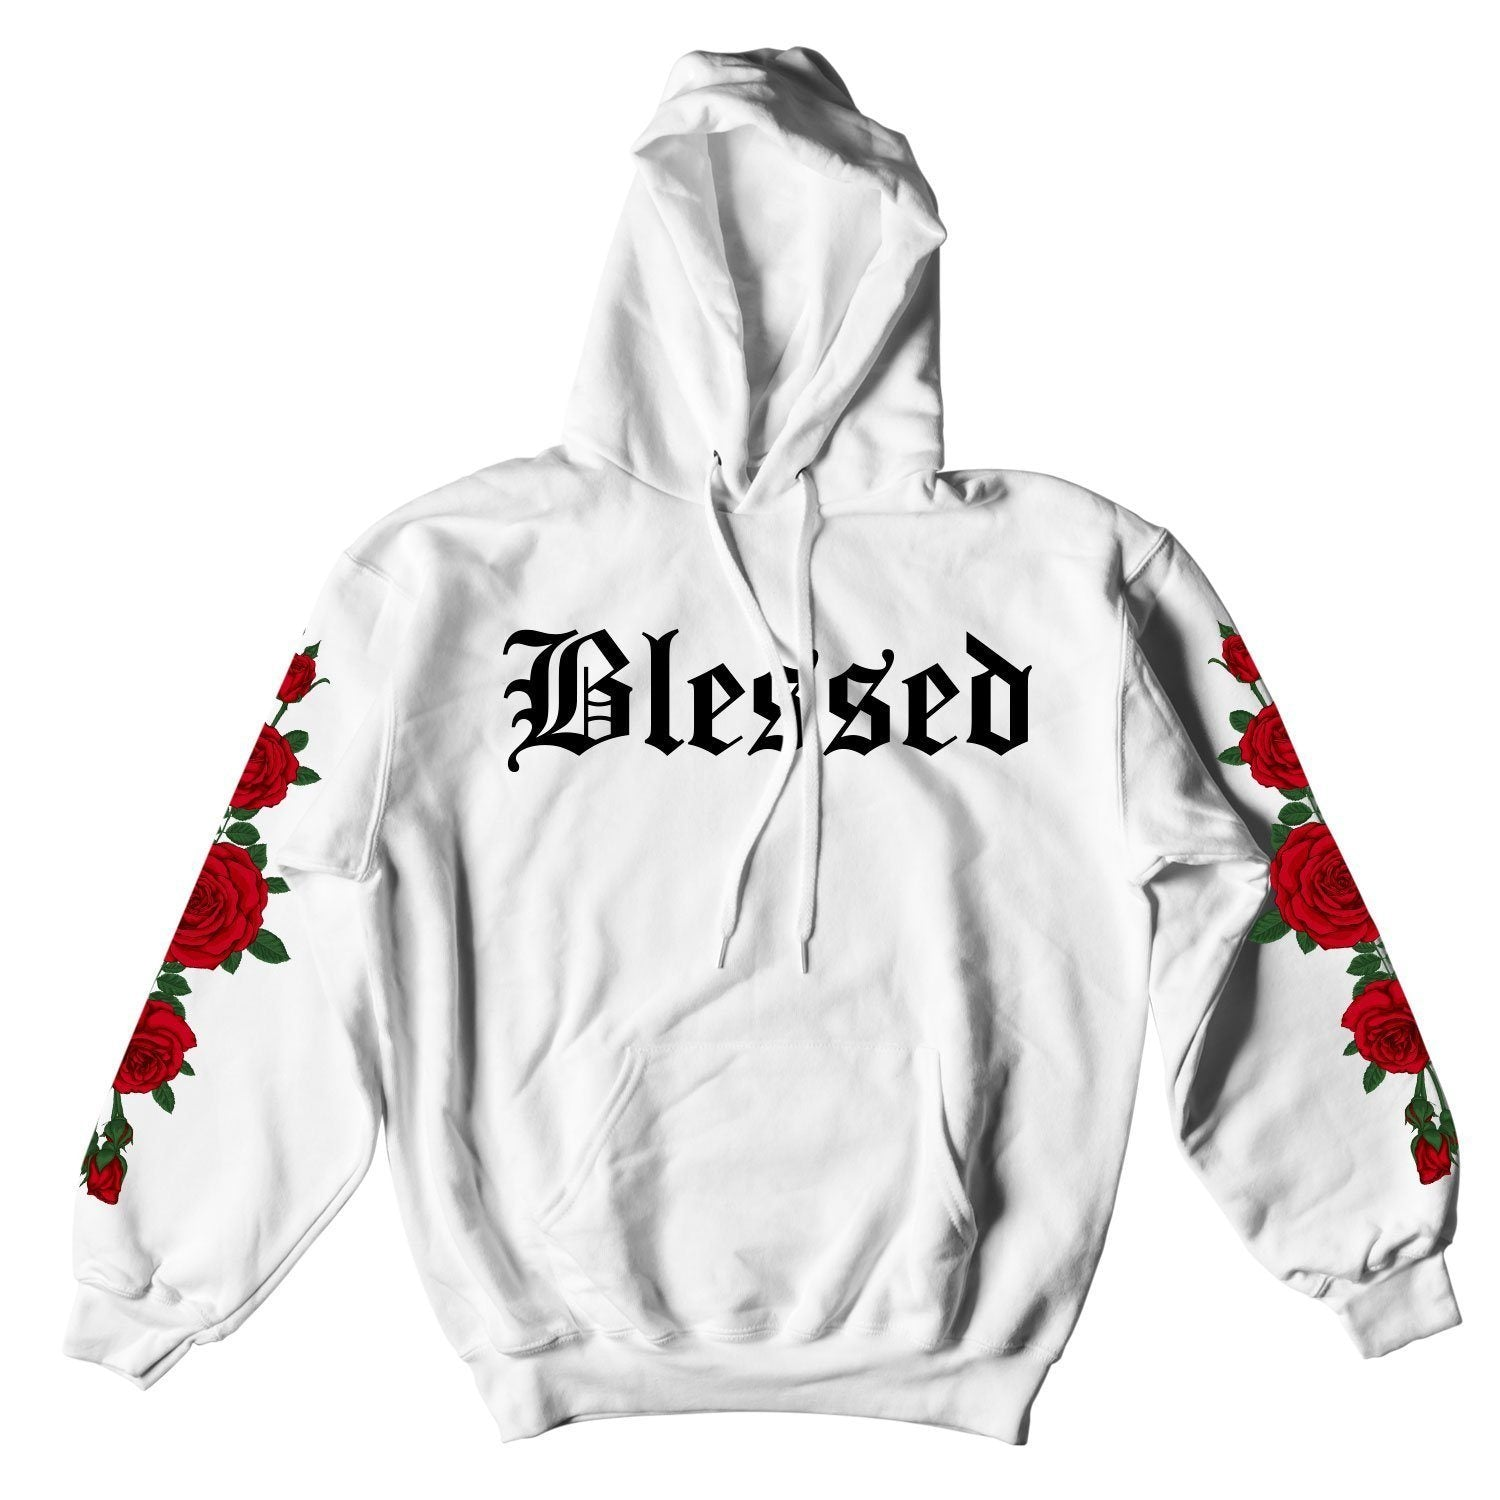 BLESSED ROSES HOODIE - WHITE – Yours Truly Clothing a7fca5e2542d7